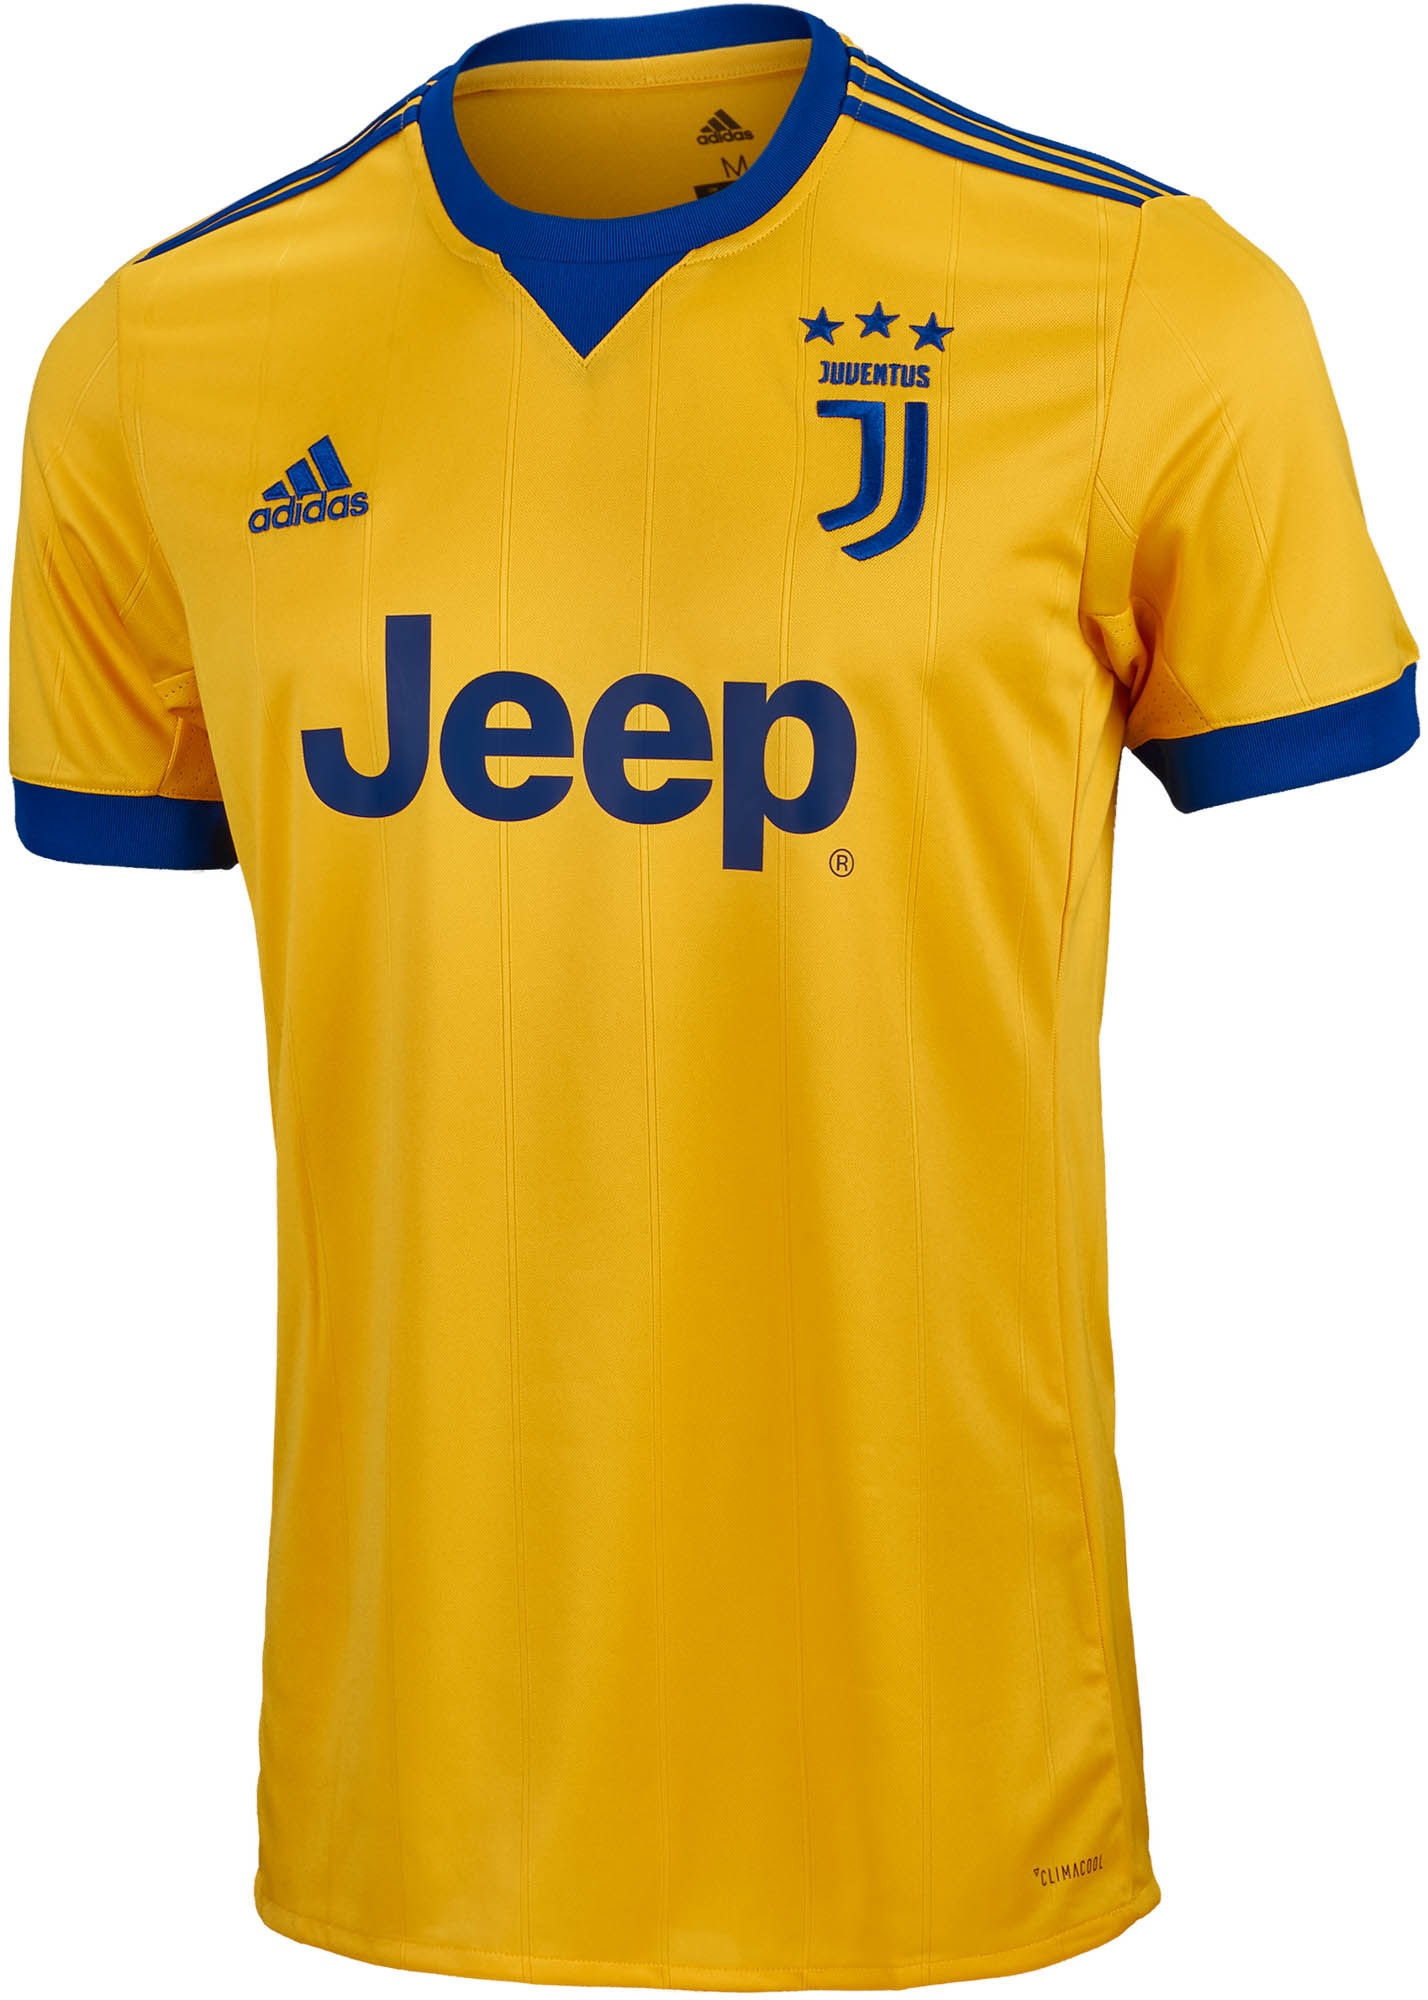 new product 429be 0fd2e 2017/18 adidas Kids Juventus Away Jersey- Youth Jerseys